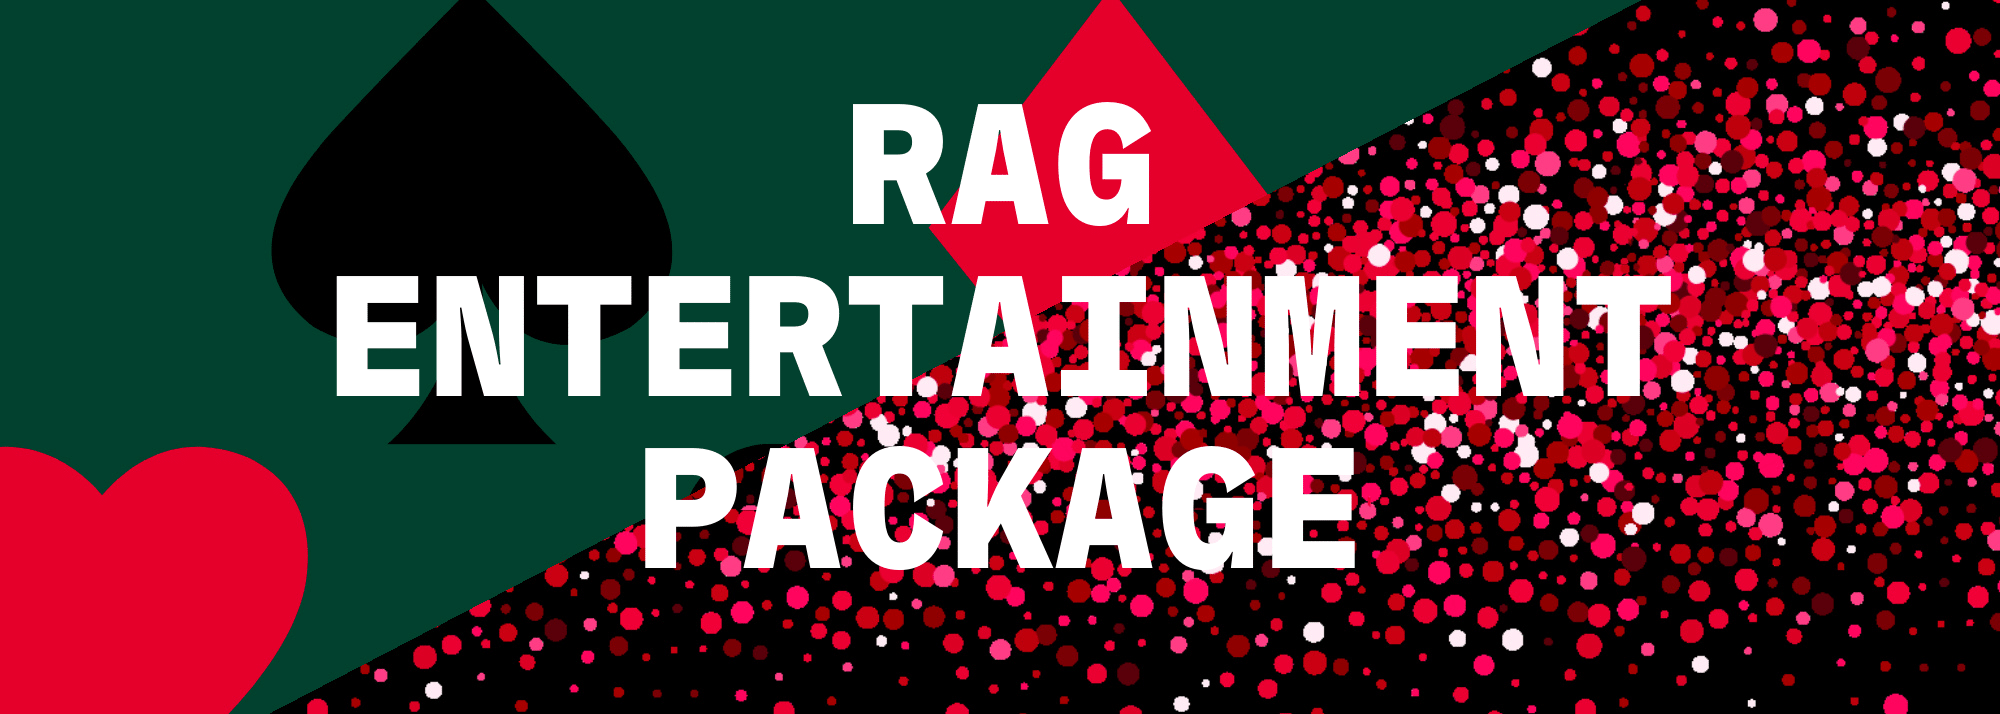 RAG Entertainment Package